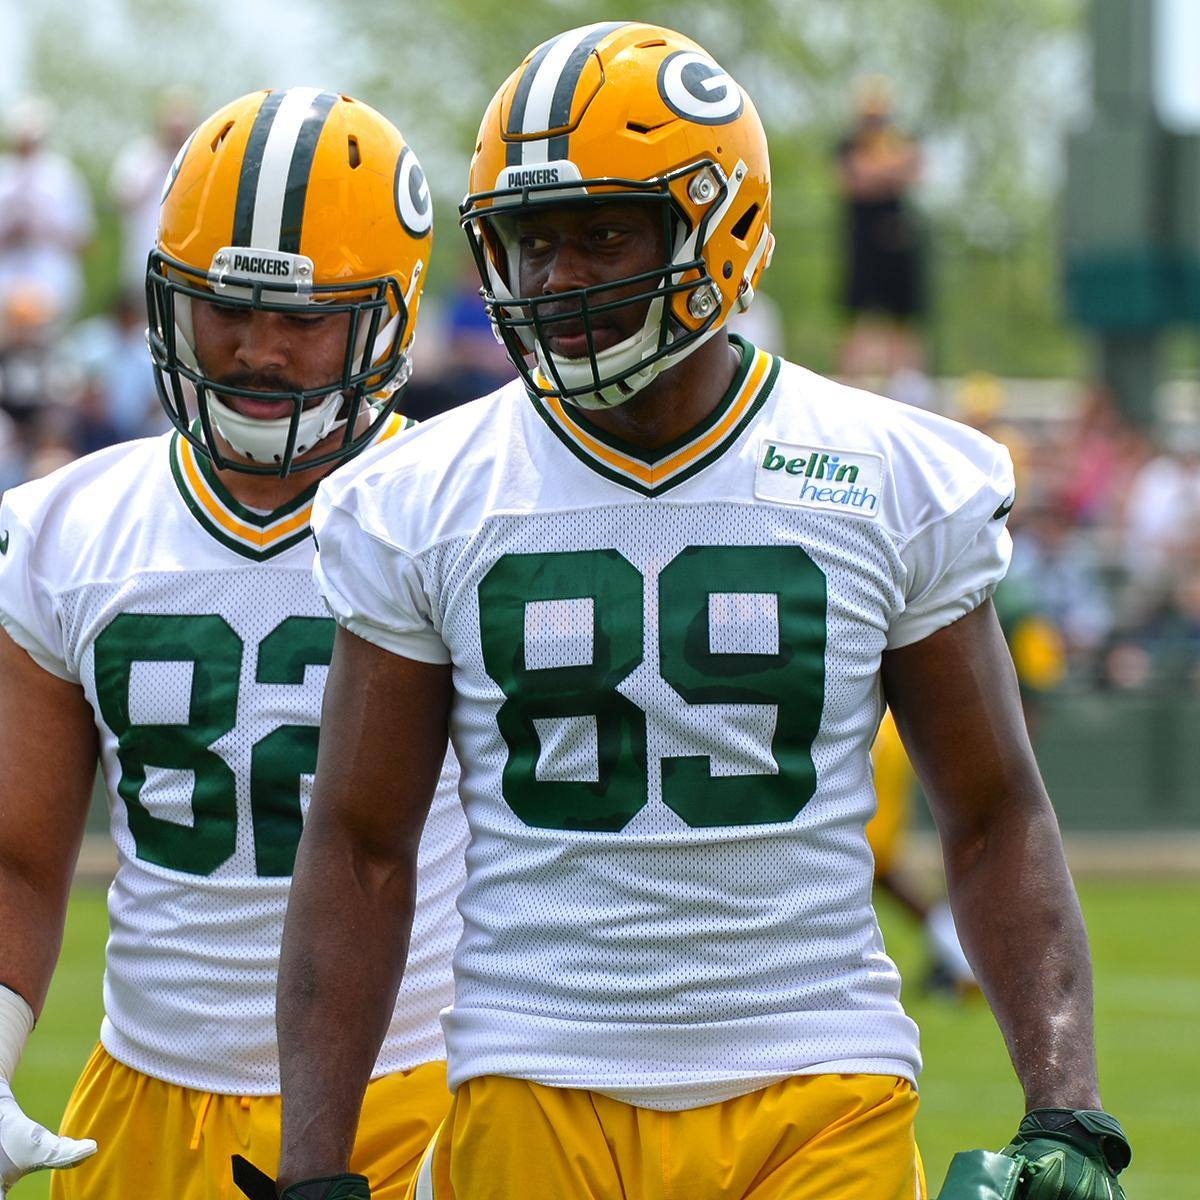 Jared Cook (#89) joins the Packers' tight end corps after seven NFL seasons with the Titans and Rams.